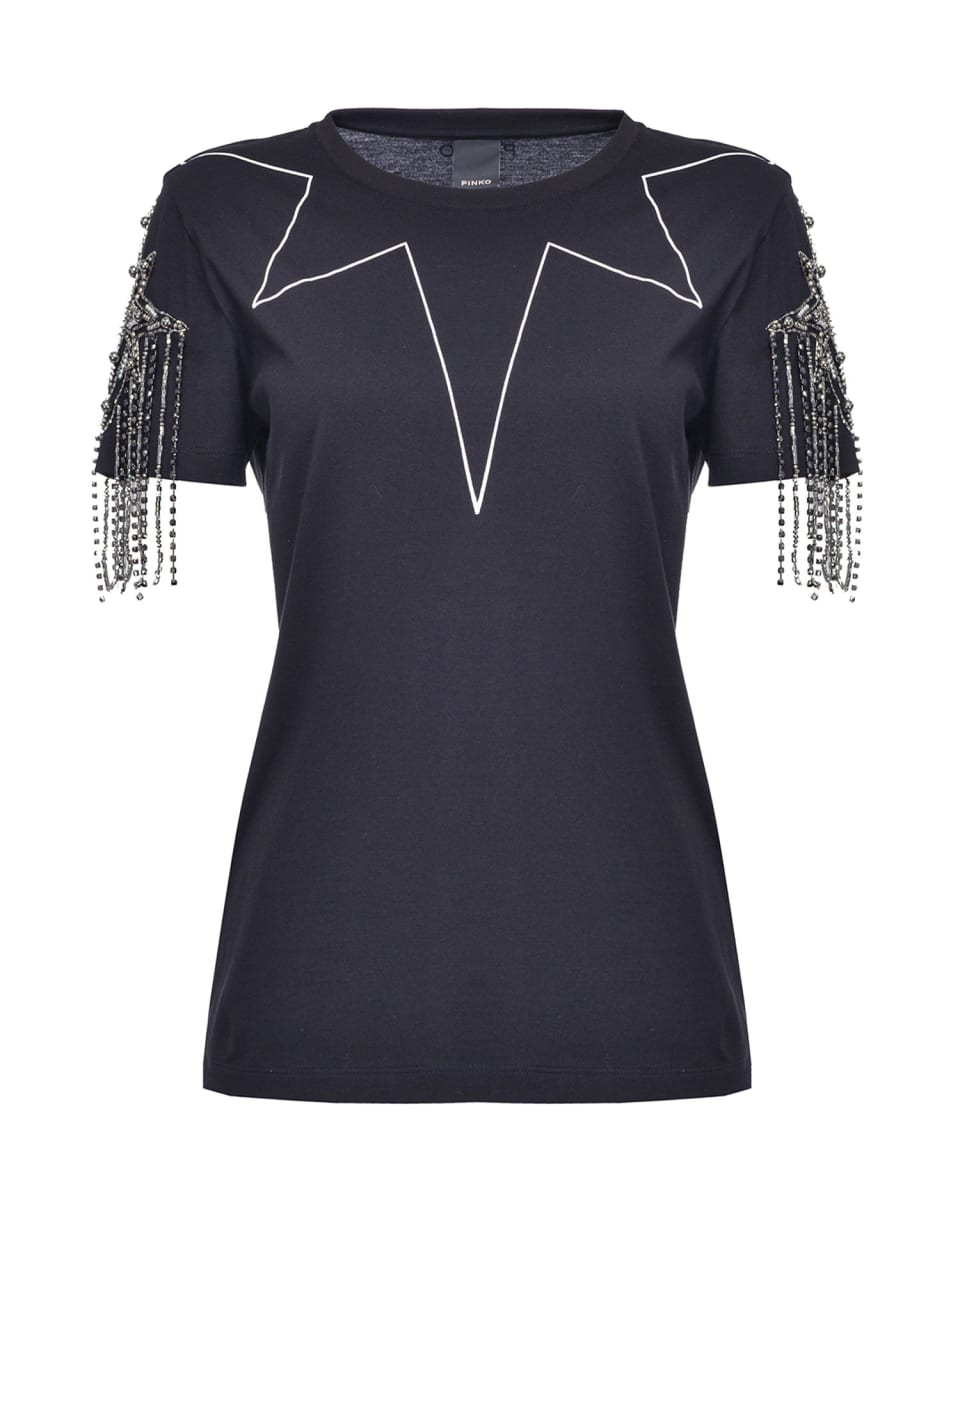 T-shirt with rhinestones on the sleeves - Pinko